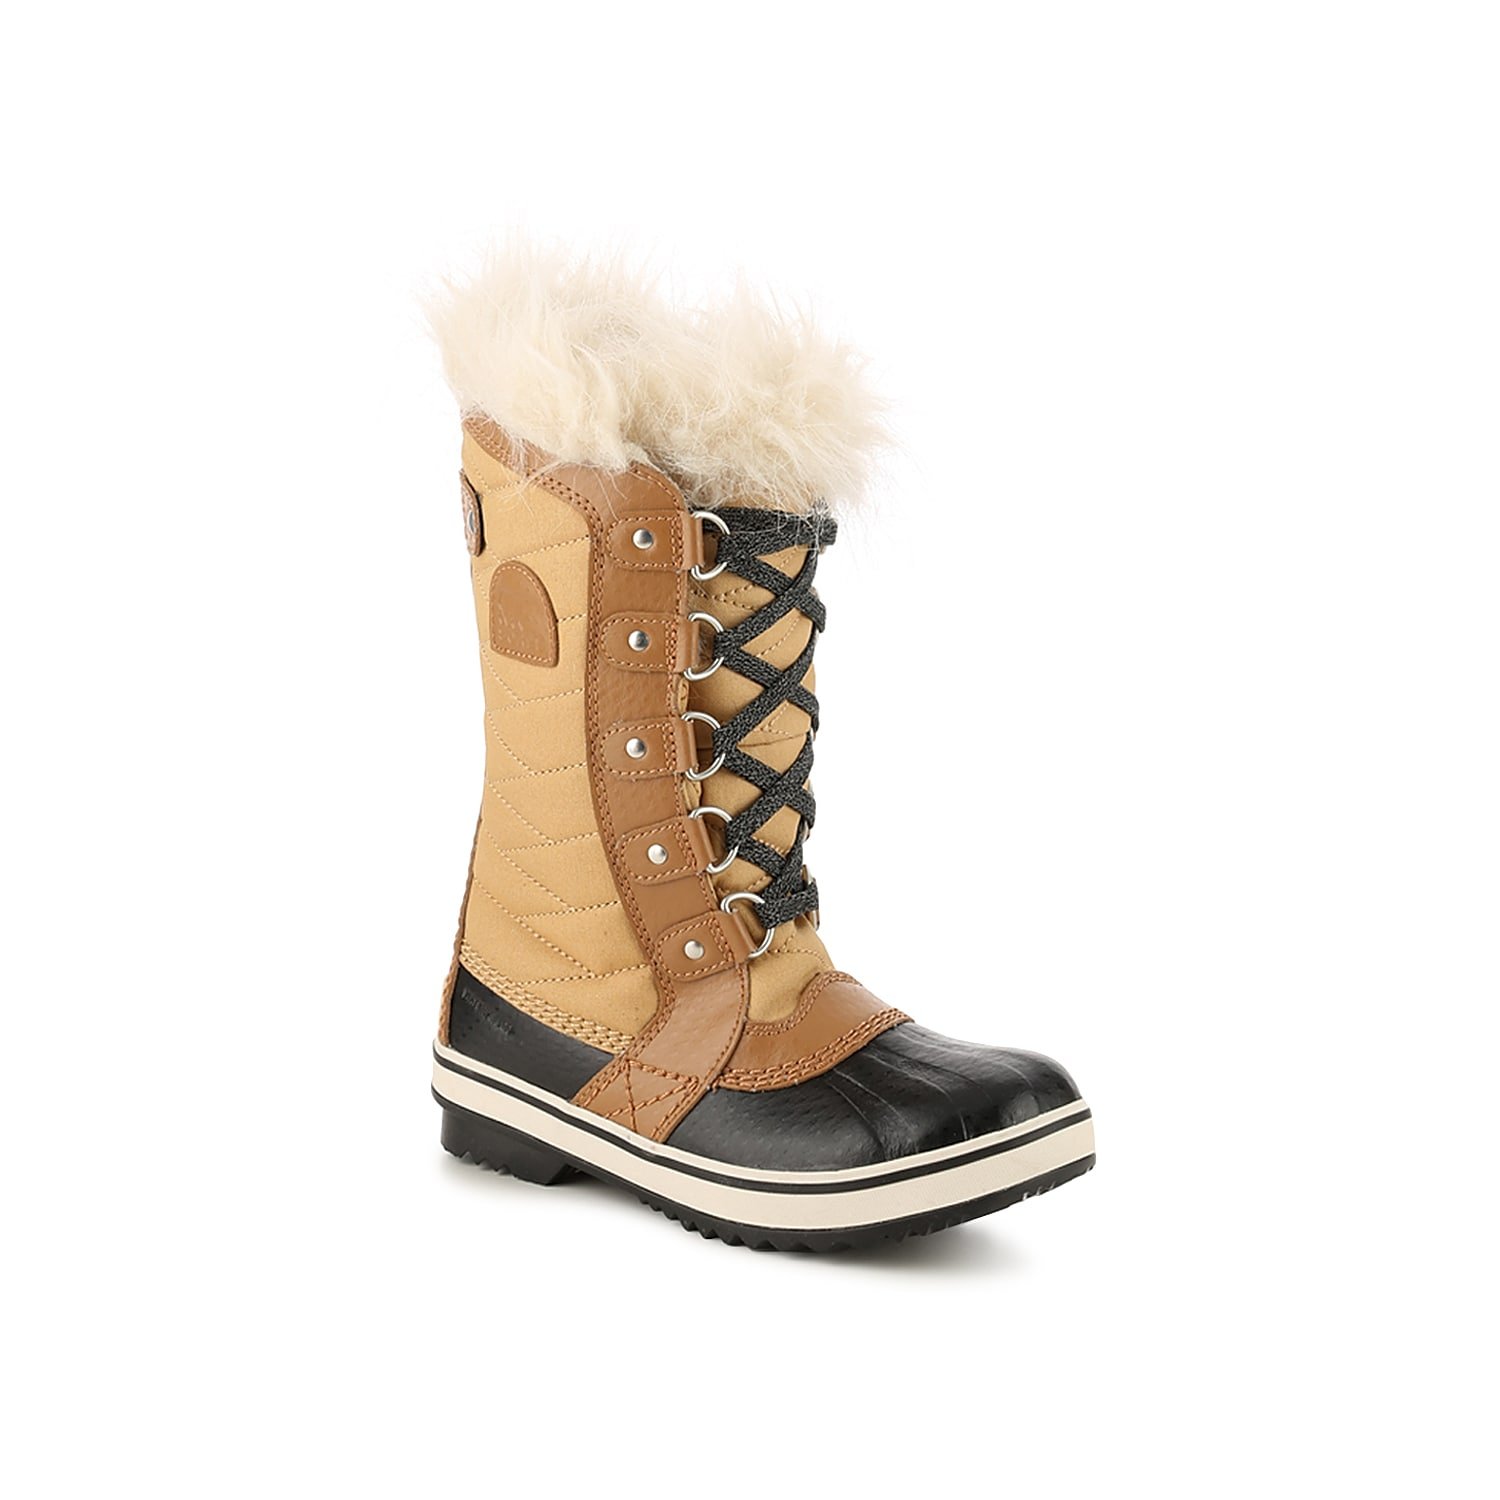 A kids boot that will keep her feet both protected and stylish, the Tofino II snow boot is a must have for the winter season!Not sure which size to order? Click here to check out our Kids' Measuring Guide! For more helpful tips and sizing FAQs, click here.